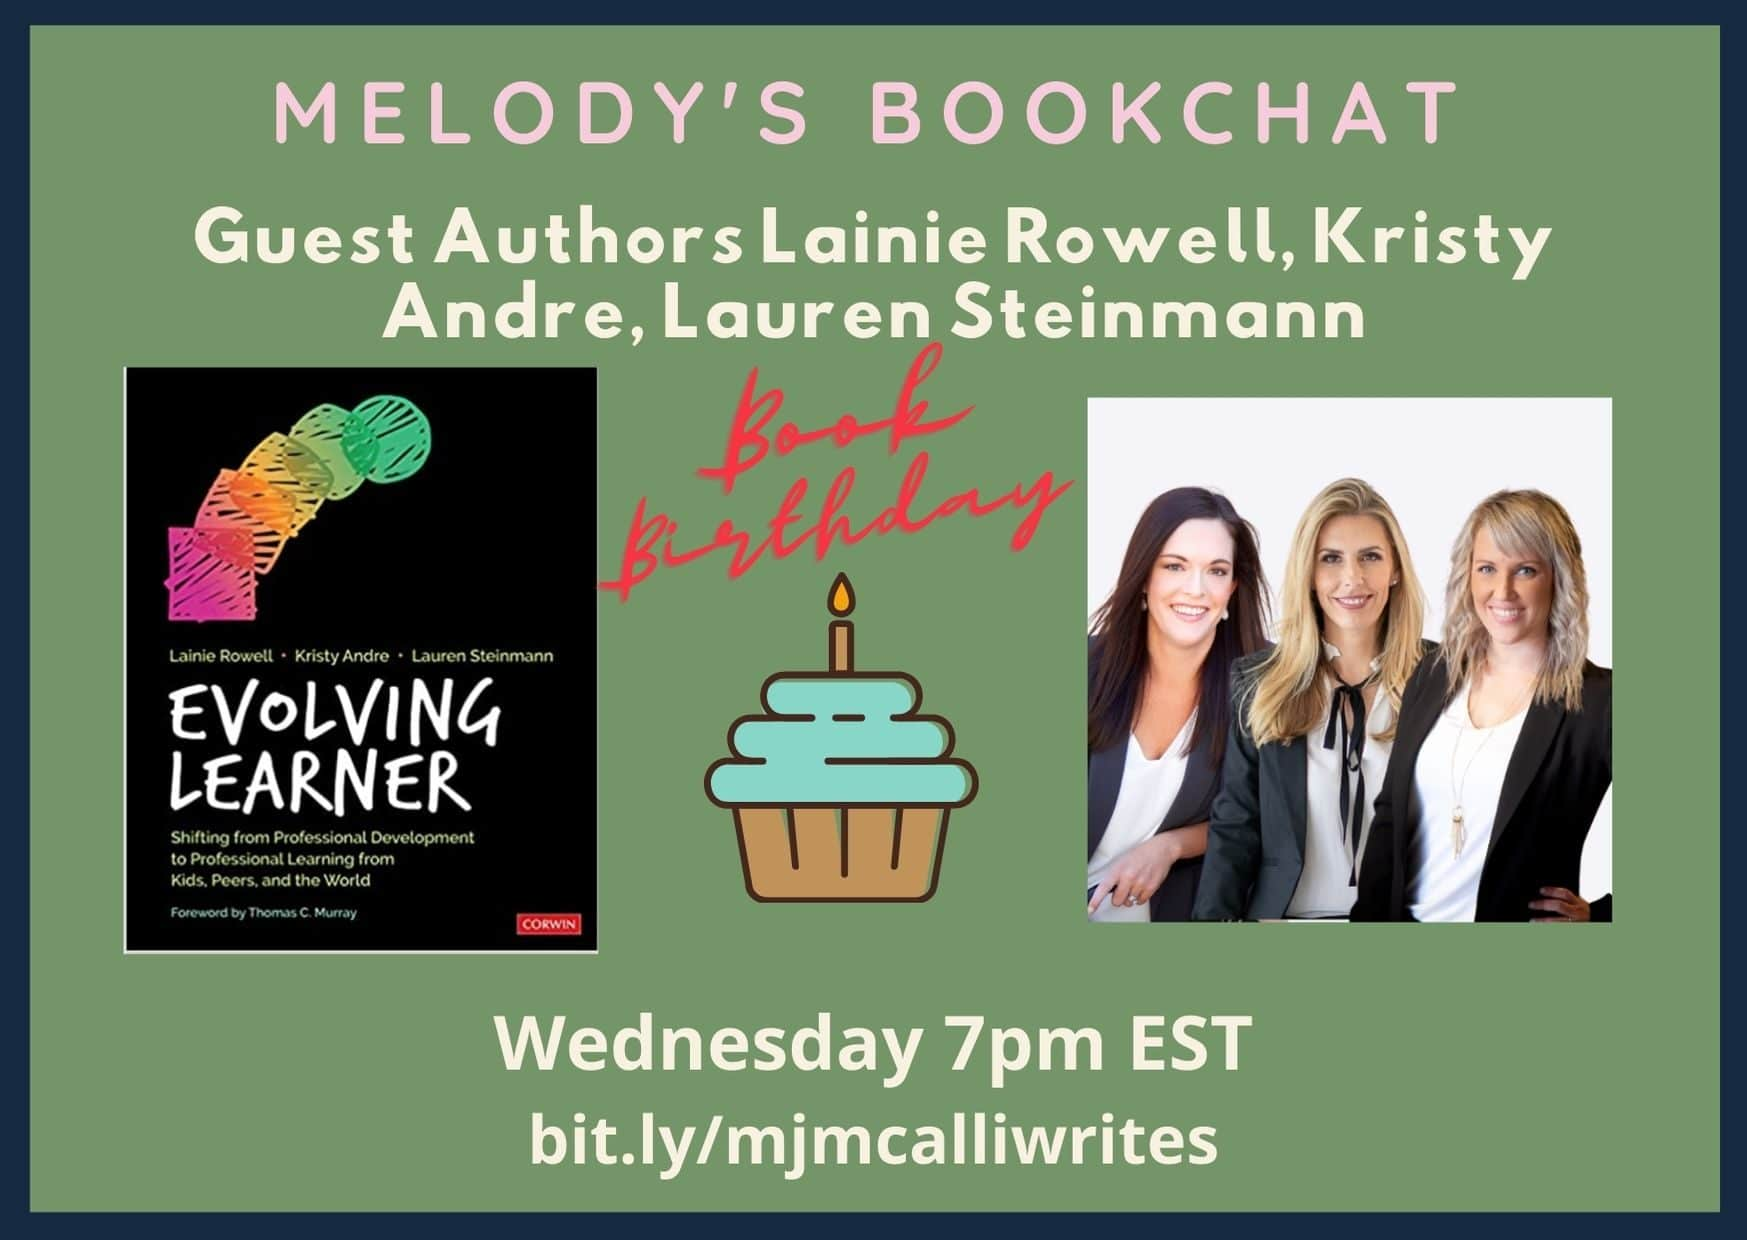 #EvolvingLearner BookChat with @LainieRowell @DrKristyAndre @LaurenMStein By @mjmcalliwrites